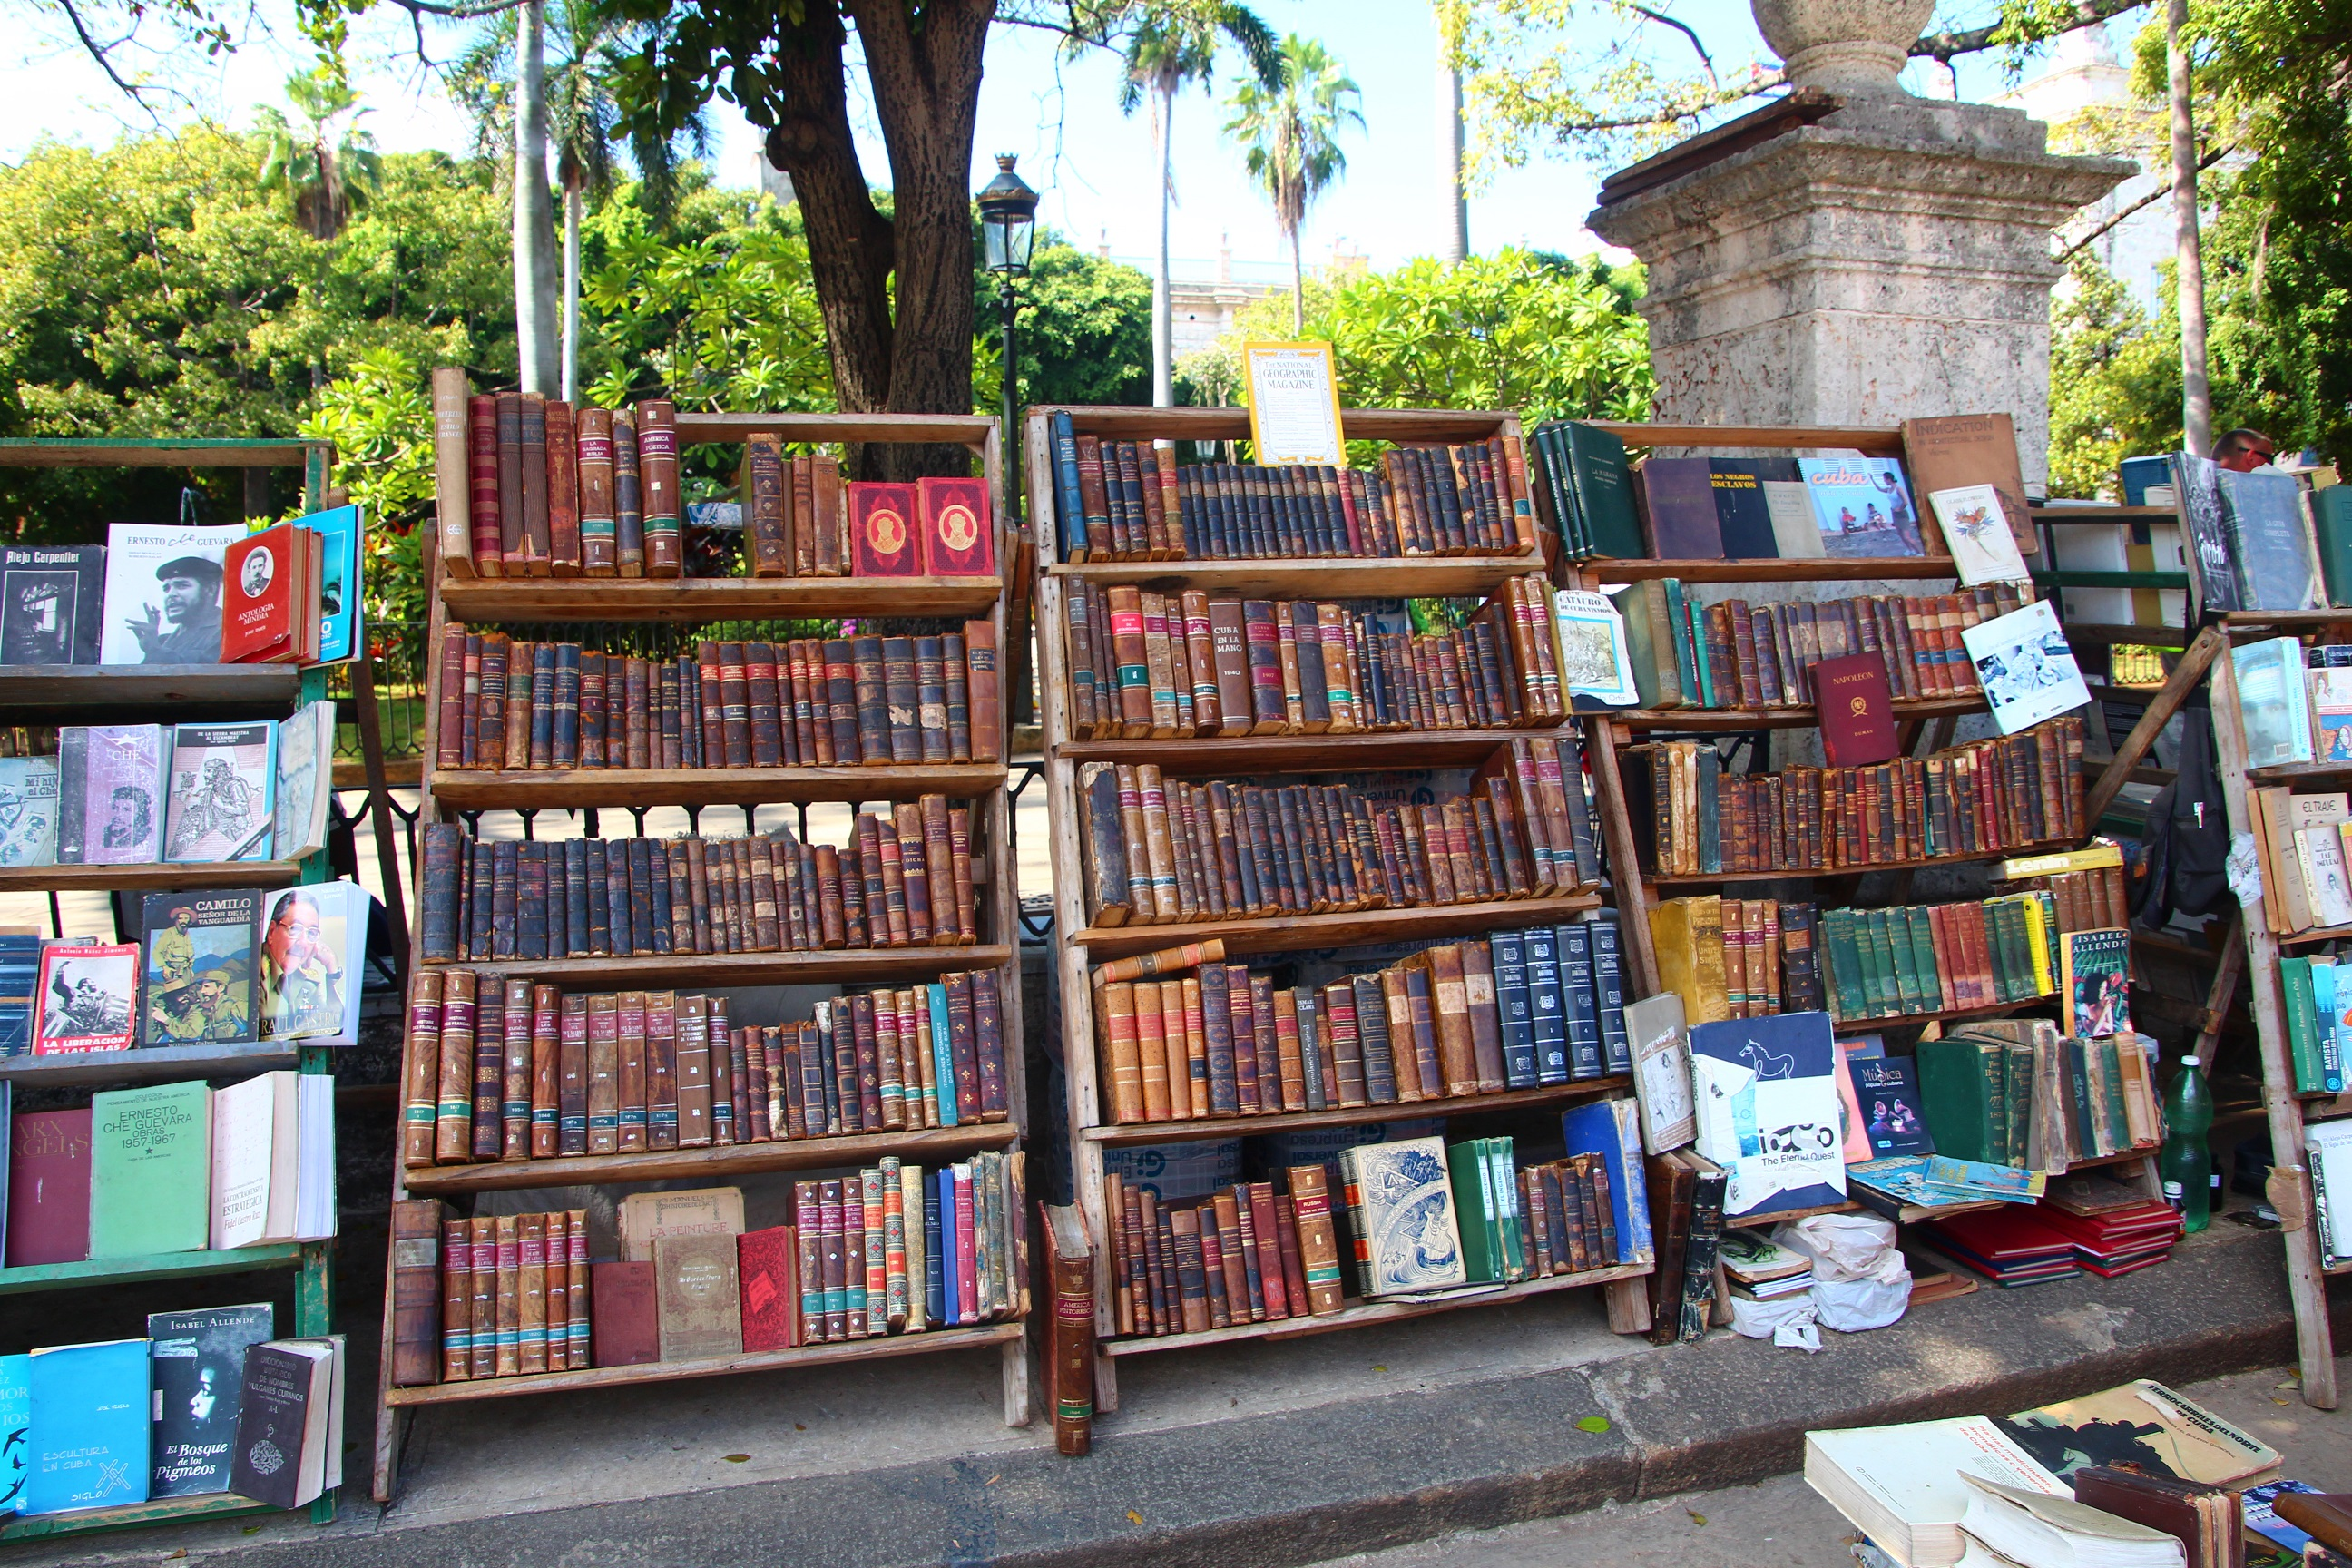 You may wish to purchase a book from Plaza Del Armas before joining a bank queue - Crooked Compass